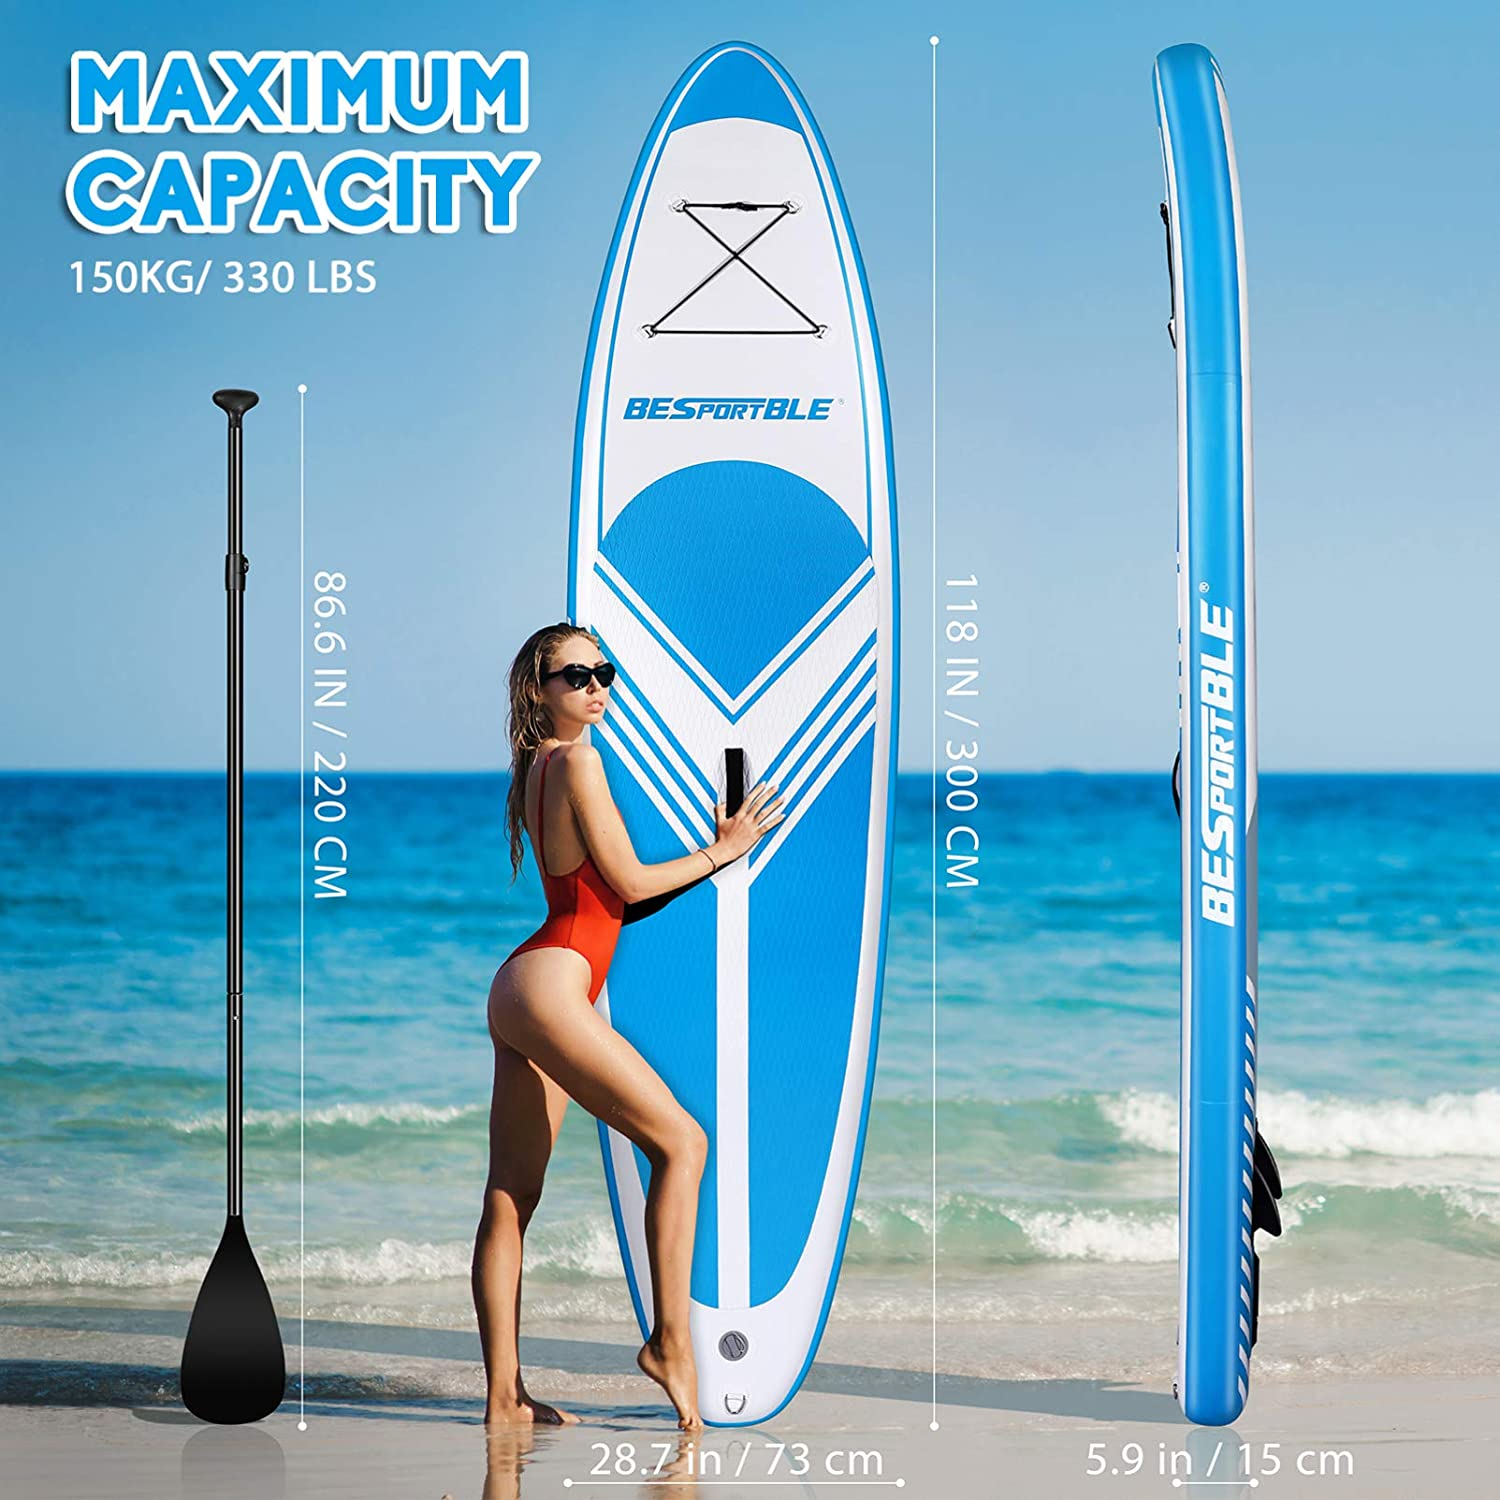 BESPORTBLE Inflatable Stand Up Paddle Board 10' Paddleboard Standing Boat for Adults SUP Accessories & Backpack Non-Slip Deck Leash Paddle and Hand Pump, Ultra- Light 24. 4lbs,Arrives in 3-5 Days